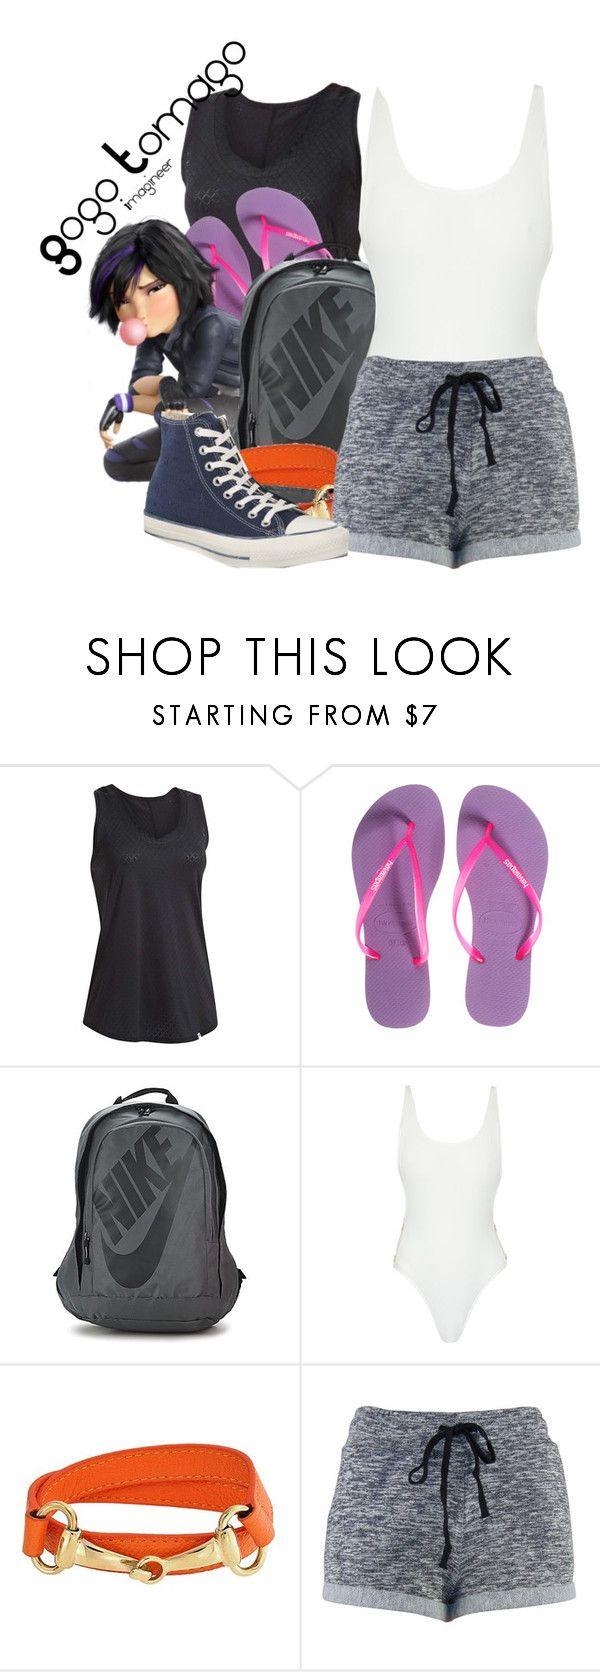 """Gogo Tomago (Big Hero 6)"" by claucrasoda ❤ liked on Polyvore featuring Under Armour, Havaianas, NIKE, Thapelo Paris, Bling Jewelry, Converse and gymessentials"